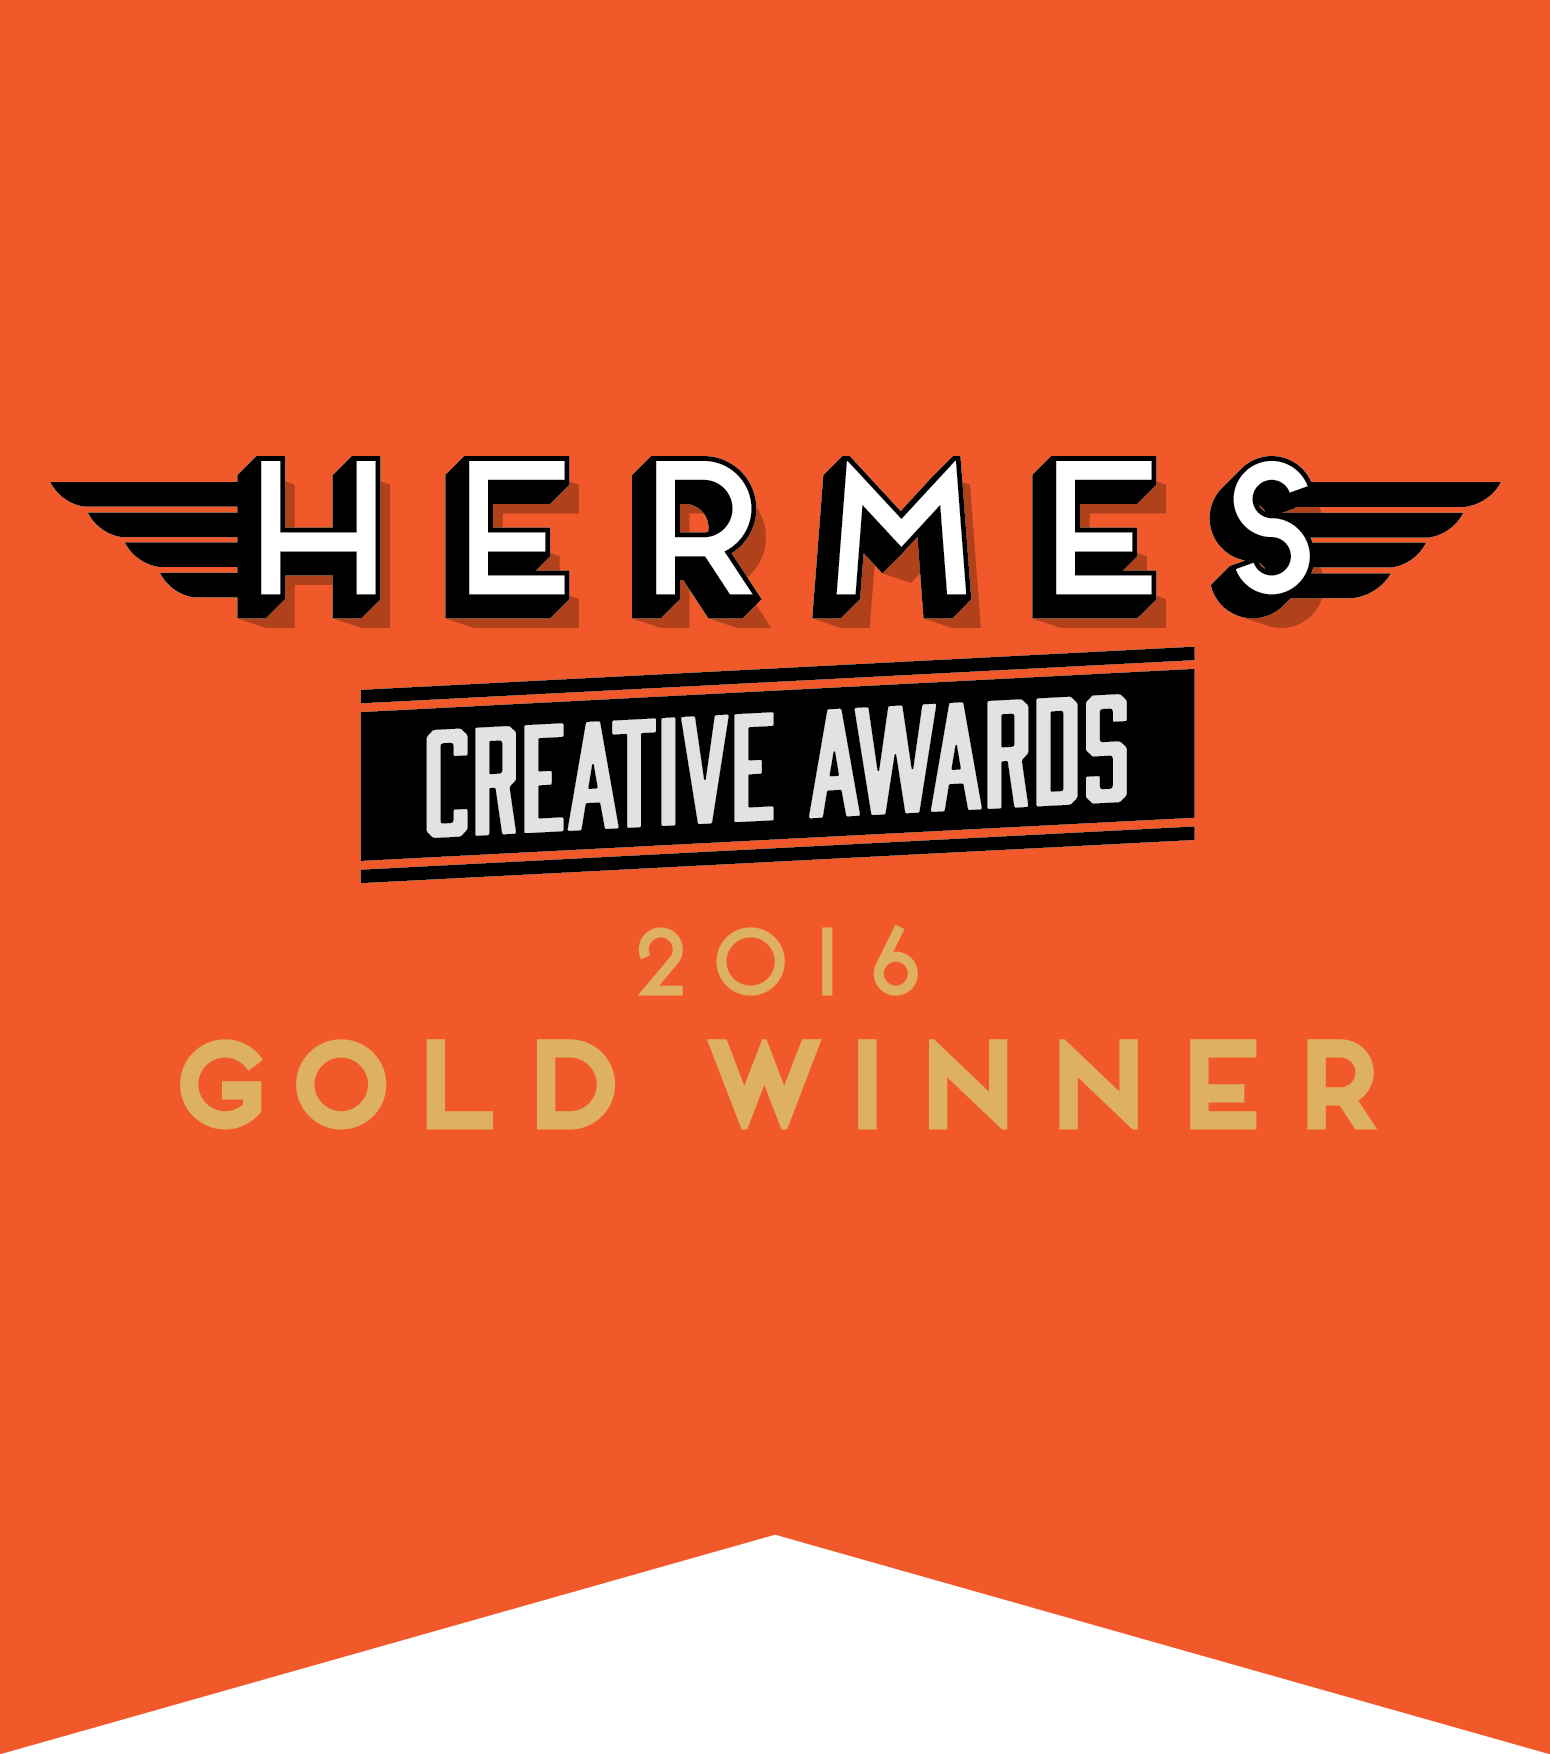 hermes-awards-gold